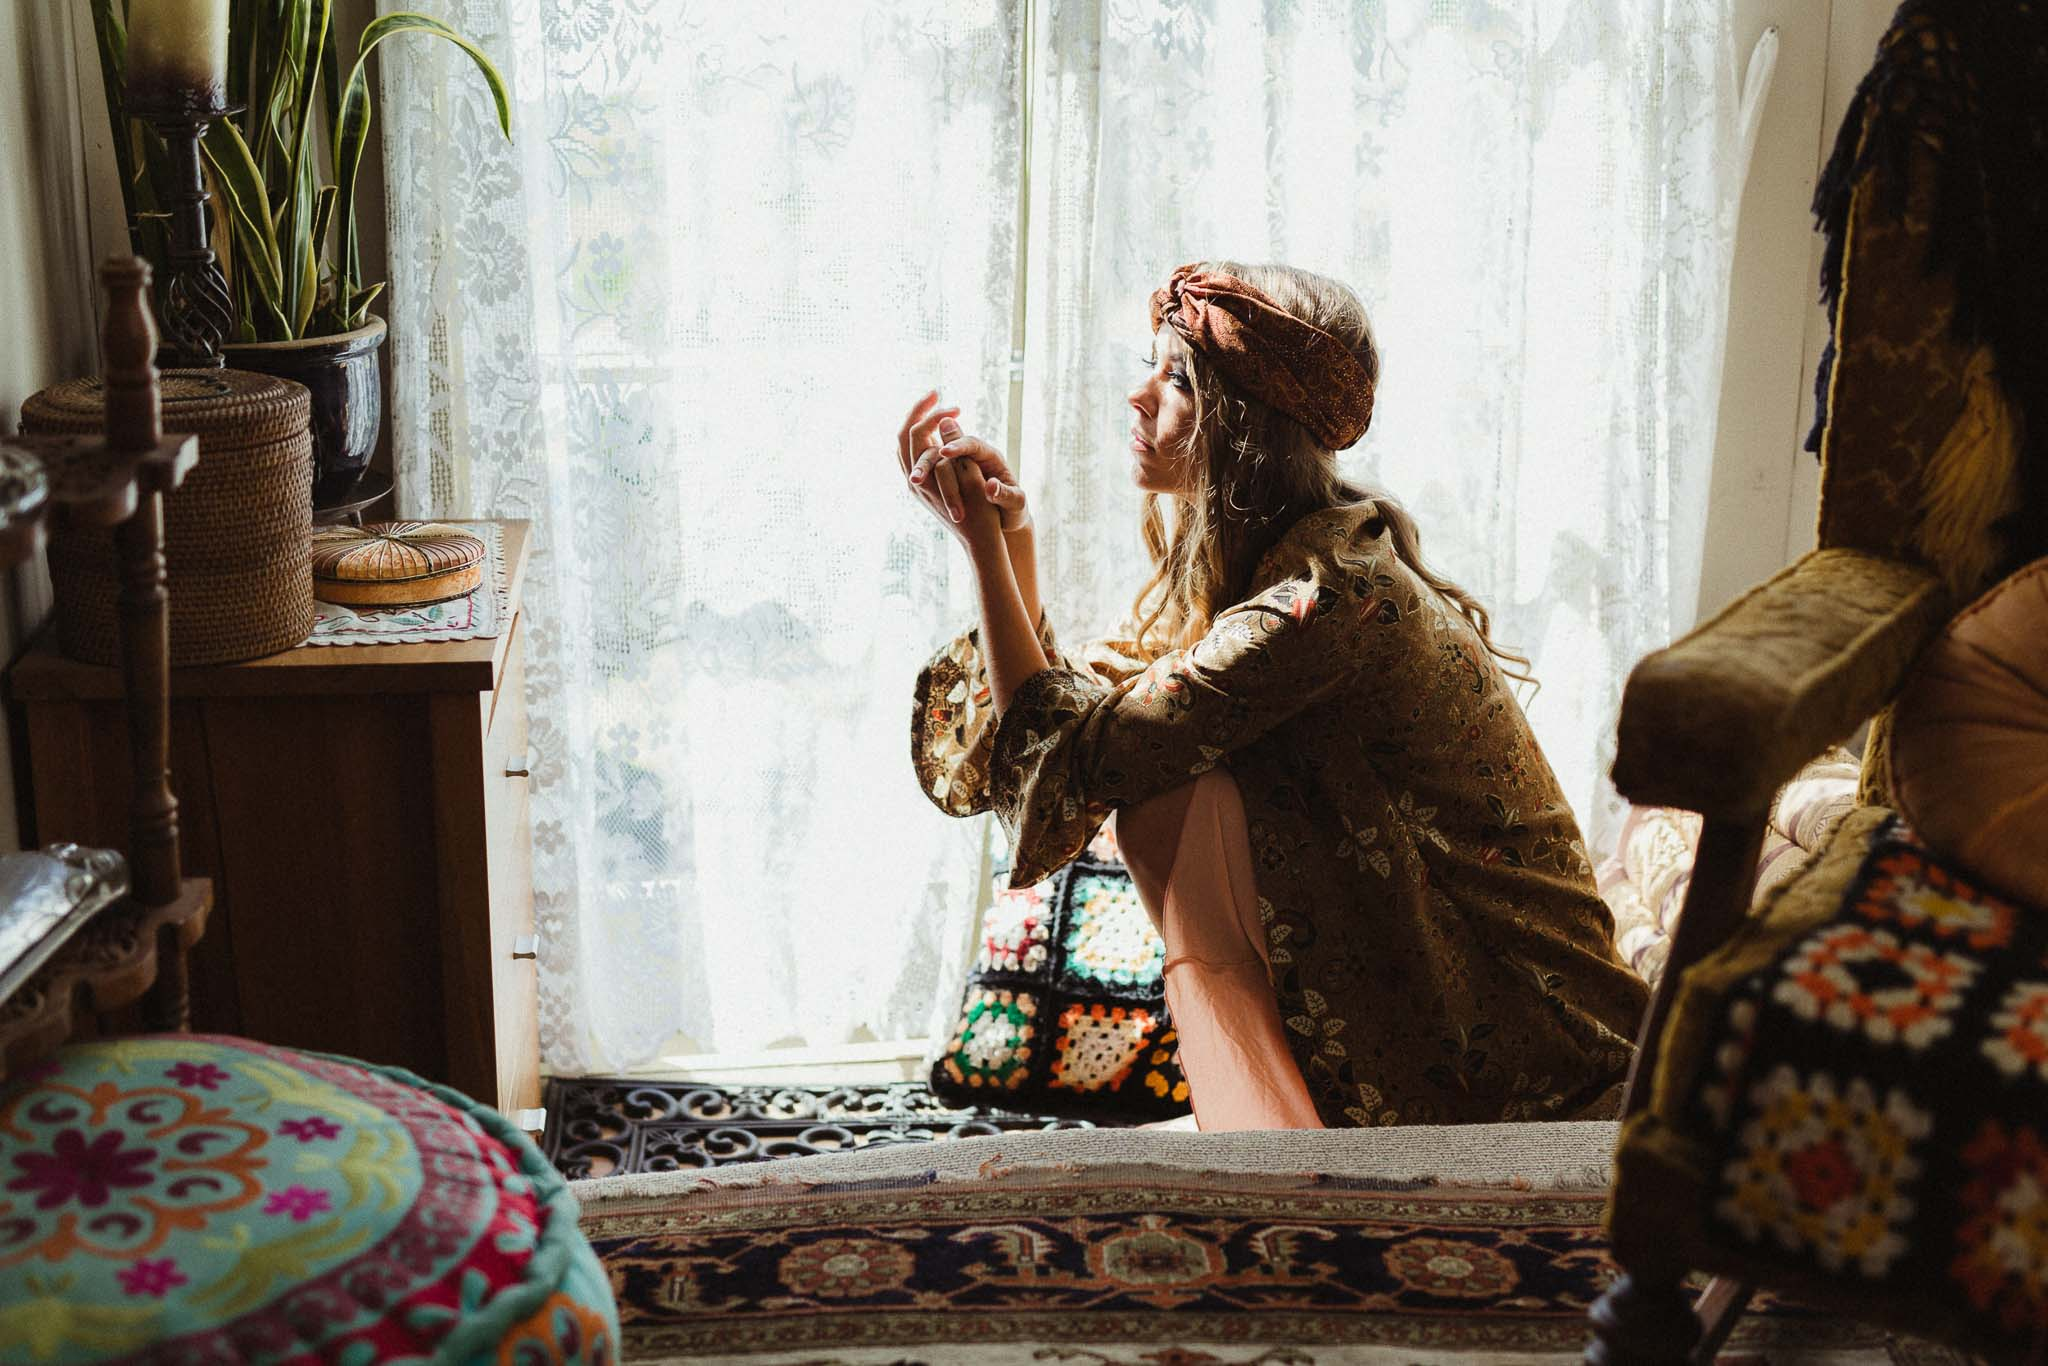 clairemossong_auckland-food-lifestyle-photographer (22 of 51).jpg